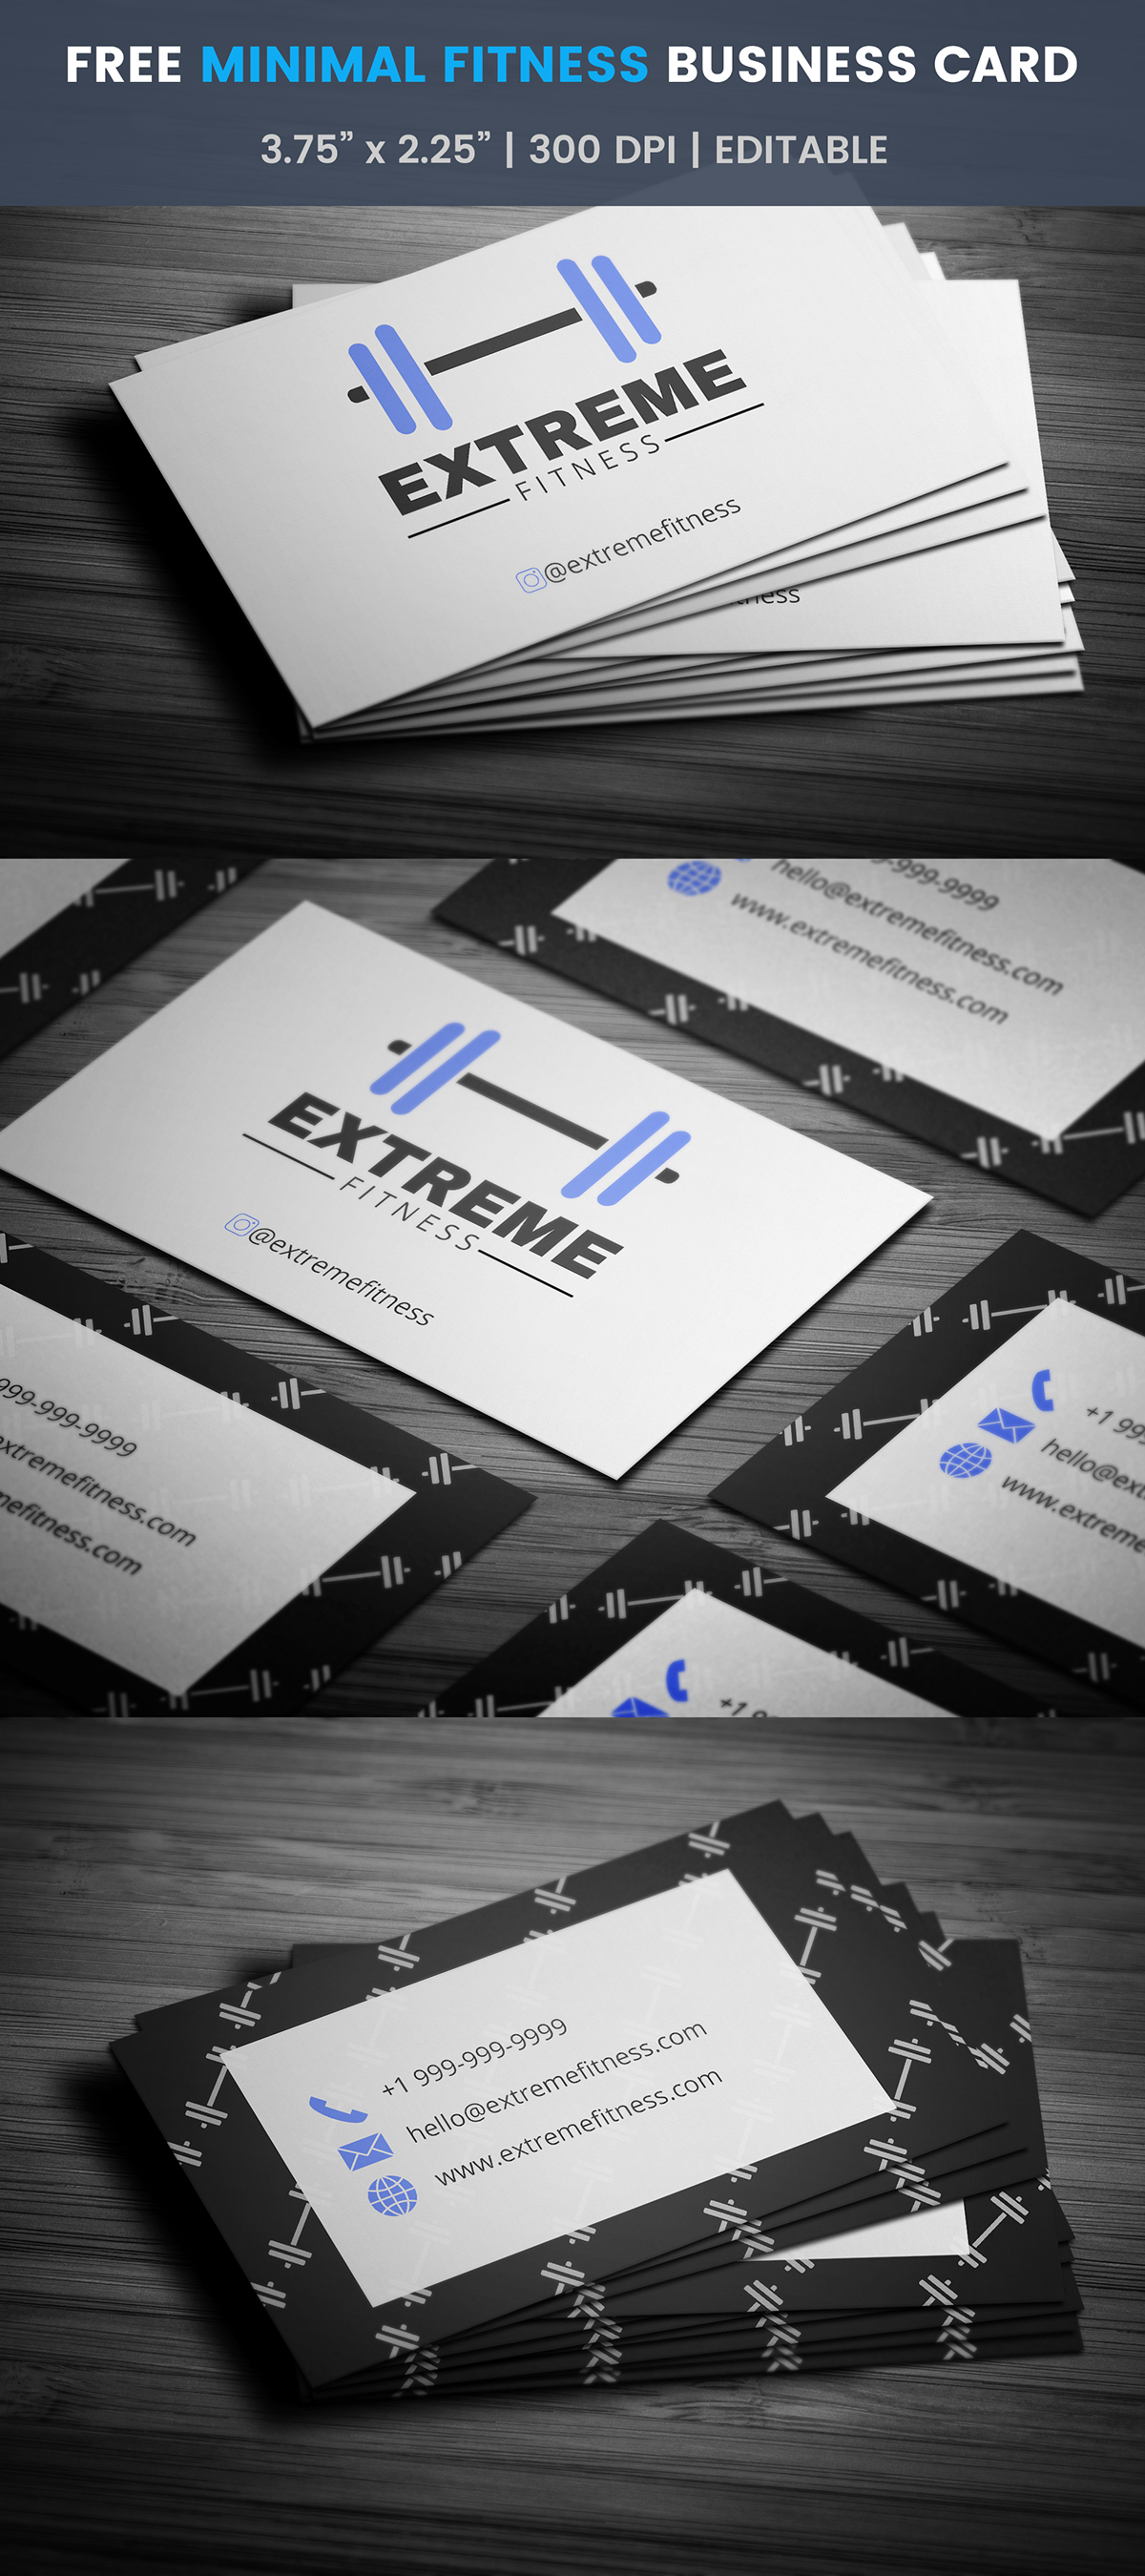 Free fitness business card template on student show free fitness business card template accmission Choice Image